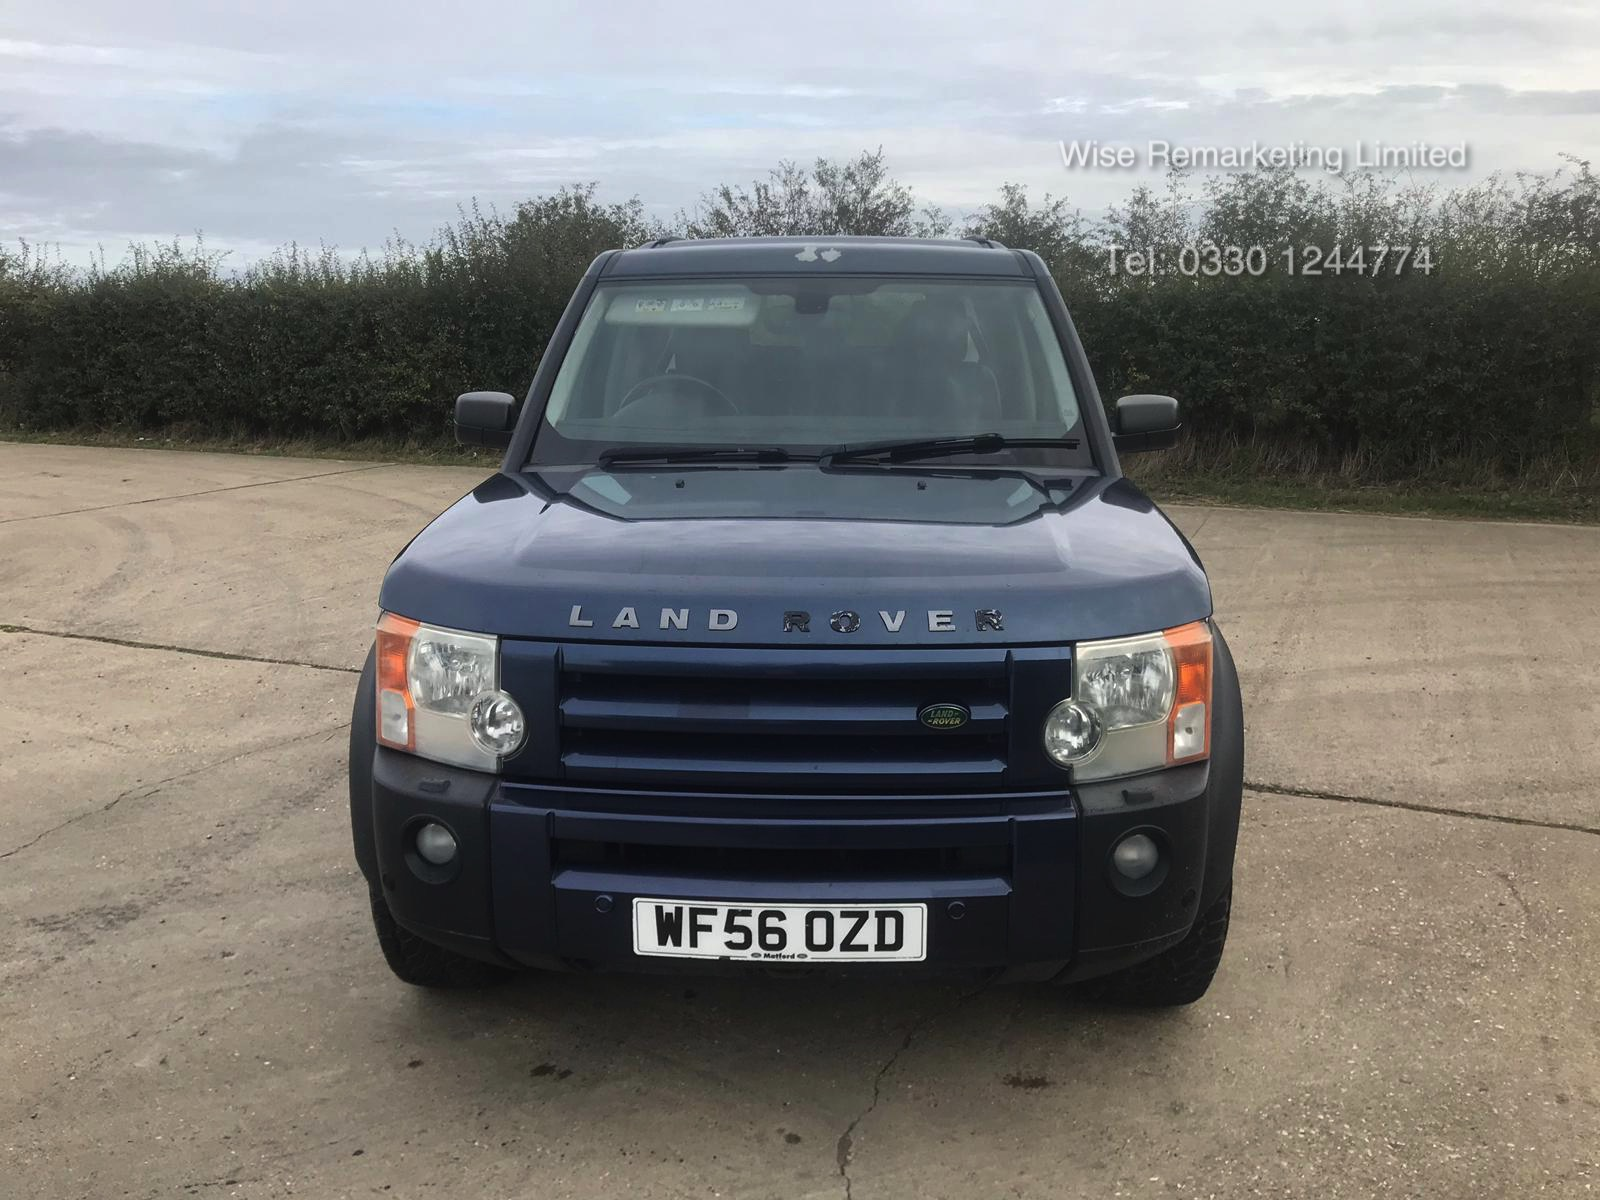 Lot 23 - Land Rover Discovery 2.7 Td V6 Special Equipment - Auto - 2007 Model - 4x4